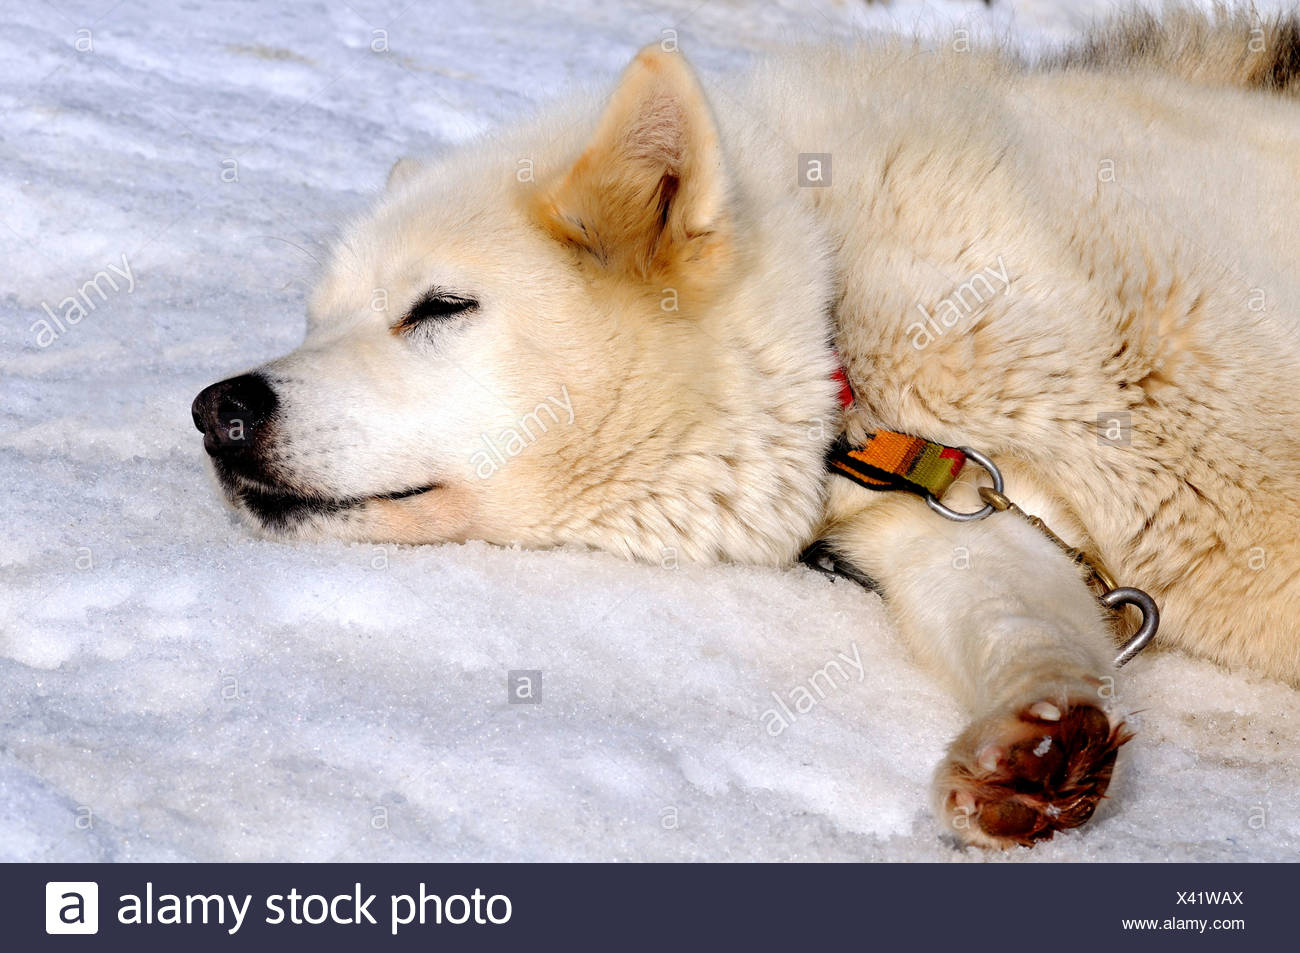 Greenland Dog sleeps on snow - Stock Image